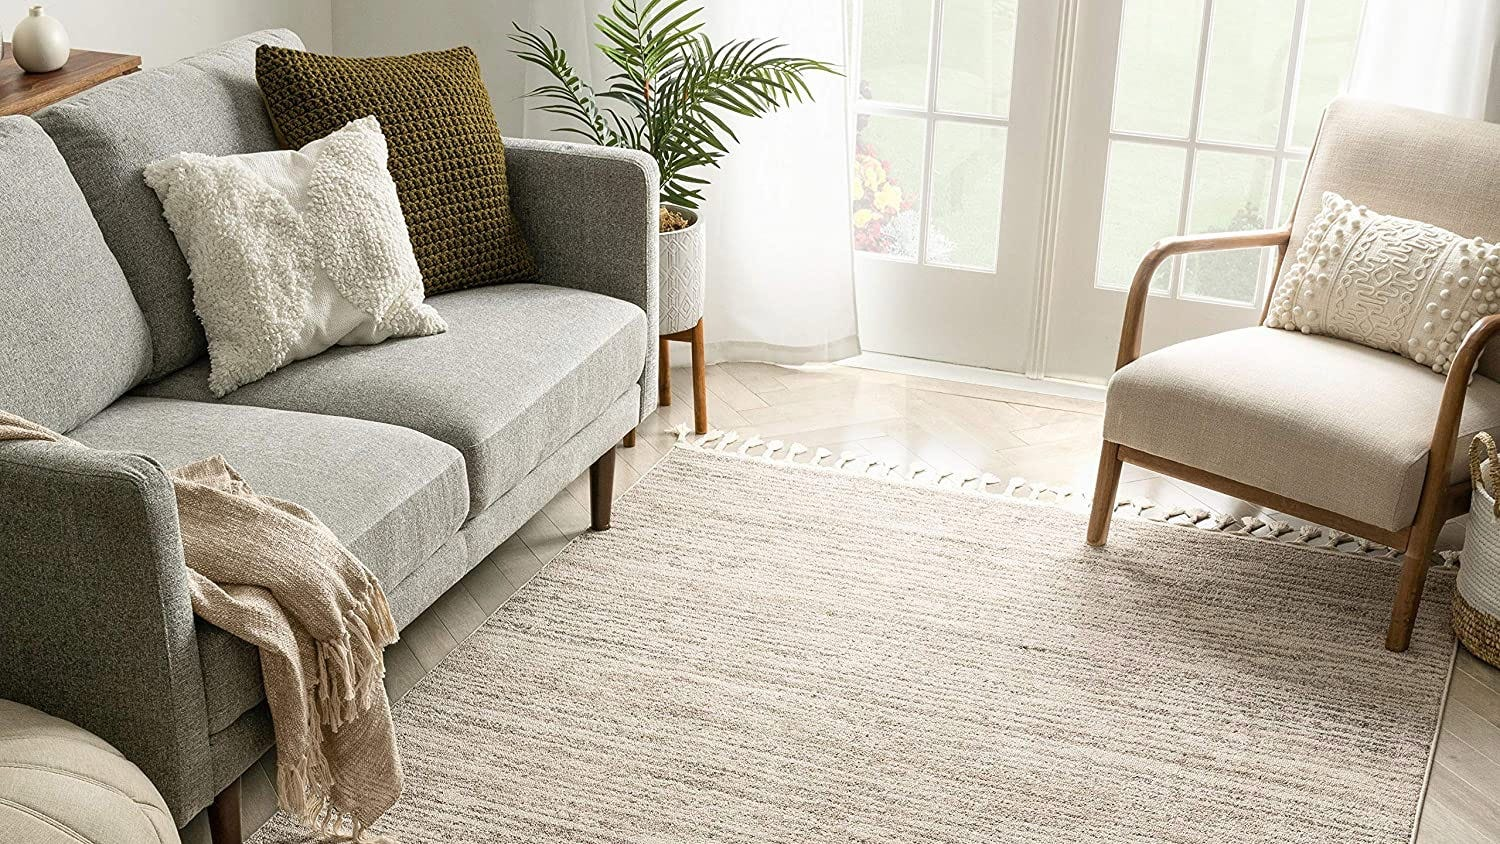 A living room with a beige rug and chair, and a gray sofa.